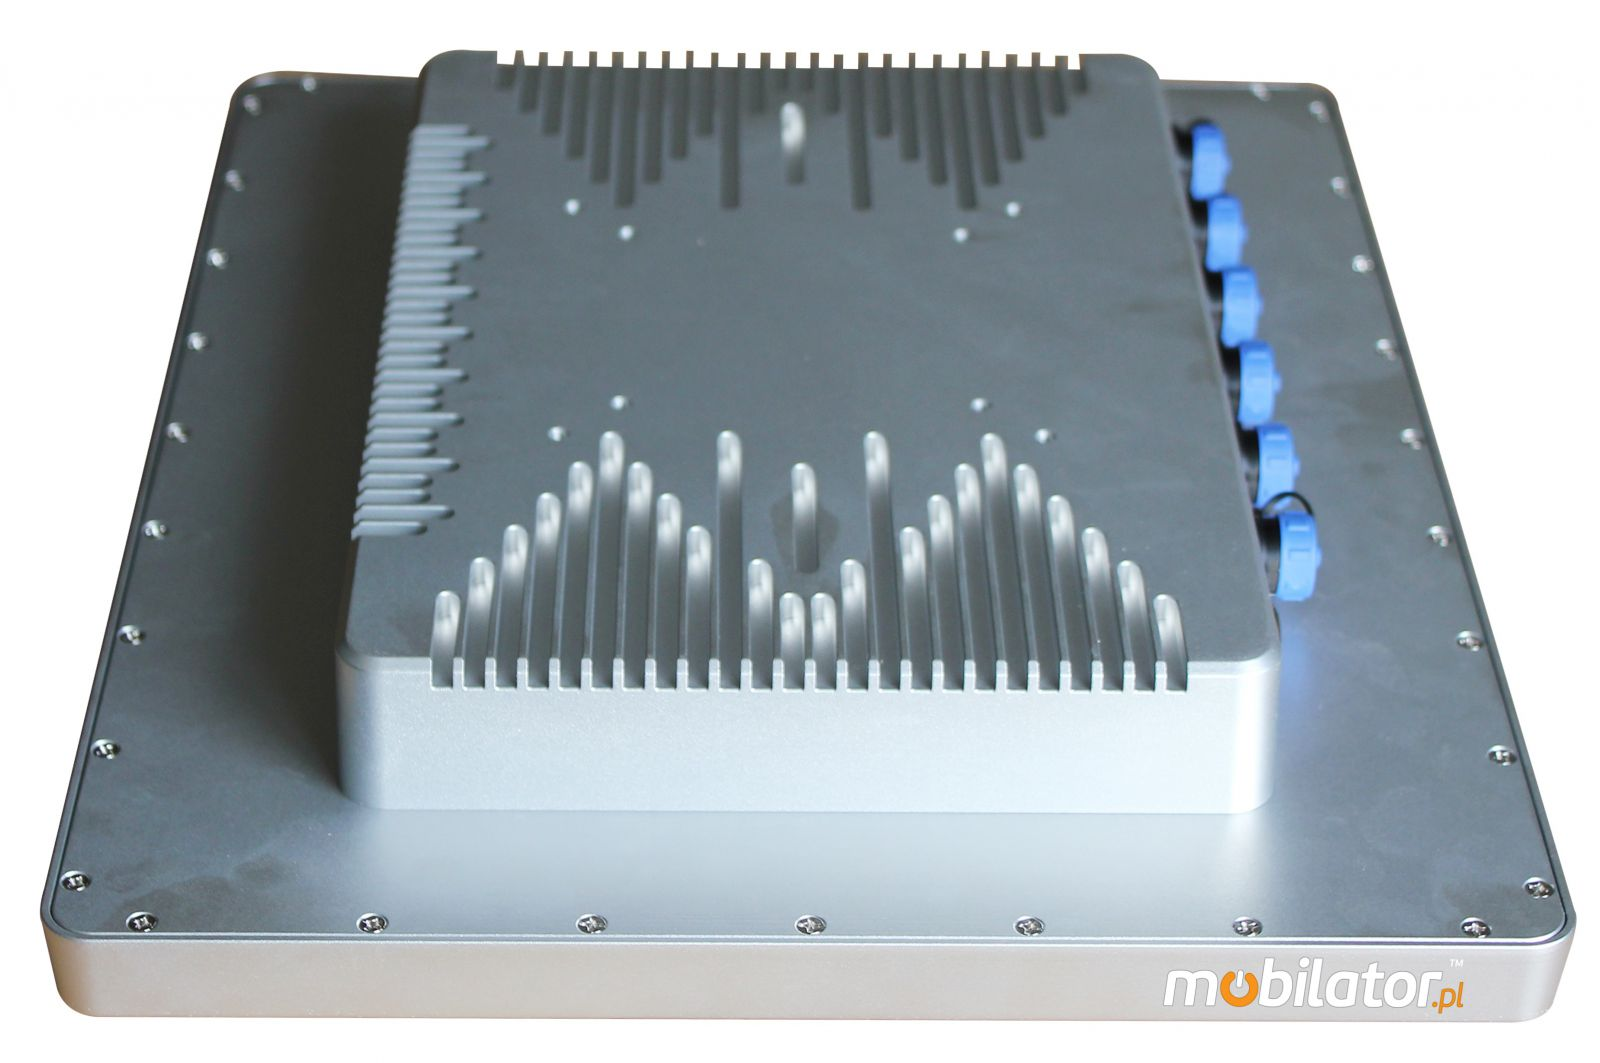 Reinforced 15-inch waterproof (IP68) computer (panel) for industry